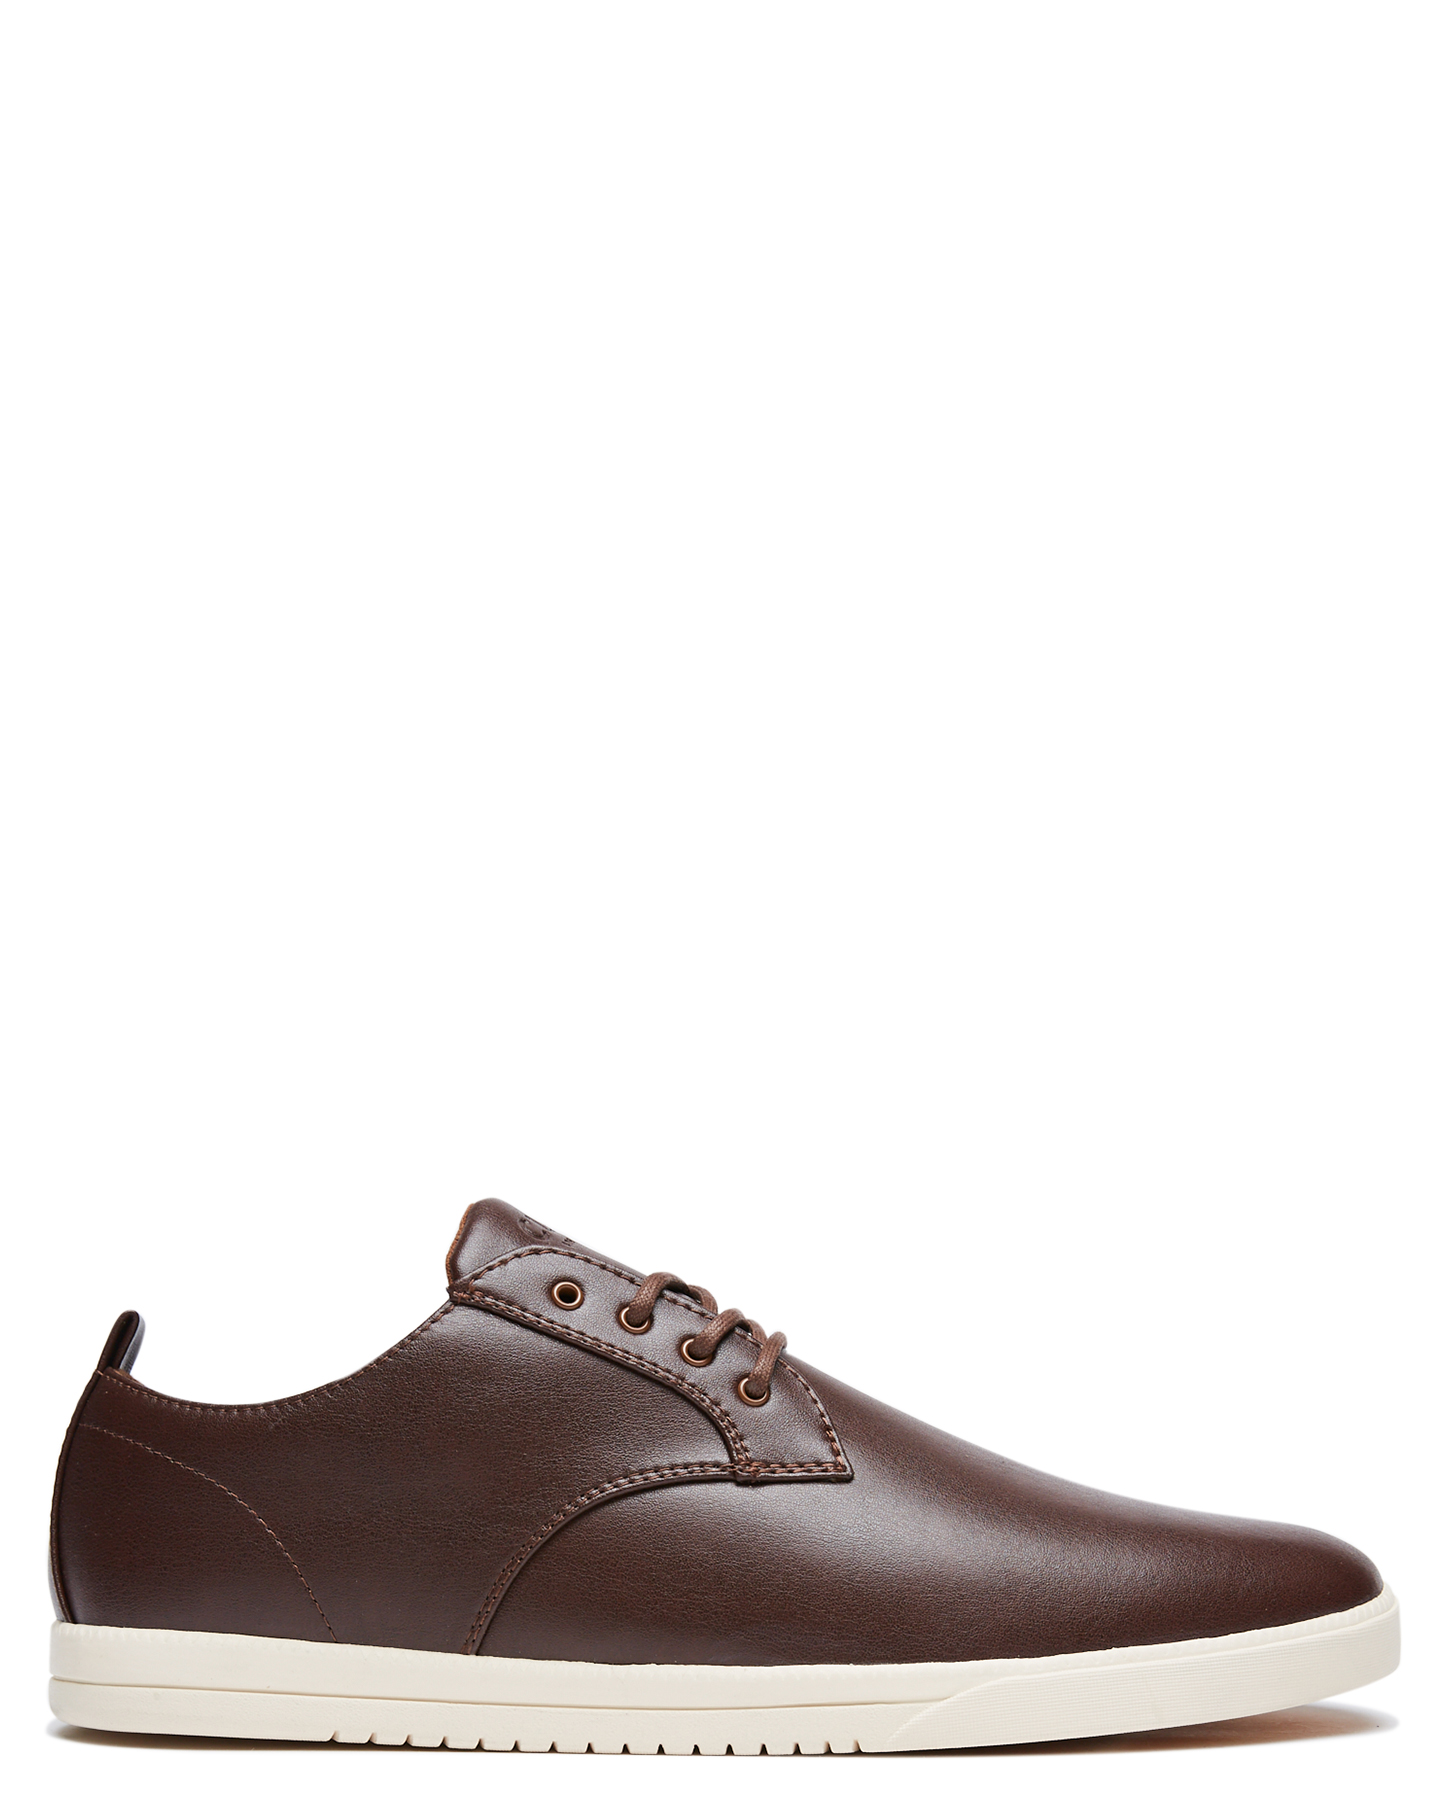 Clae Ellington Vegan Mens Shoe Brown Vegan Leather